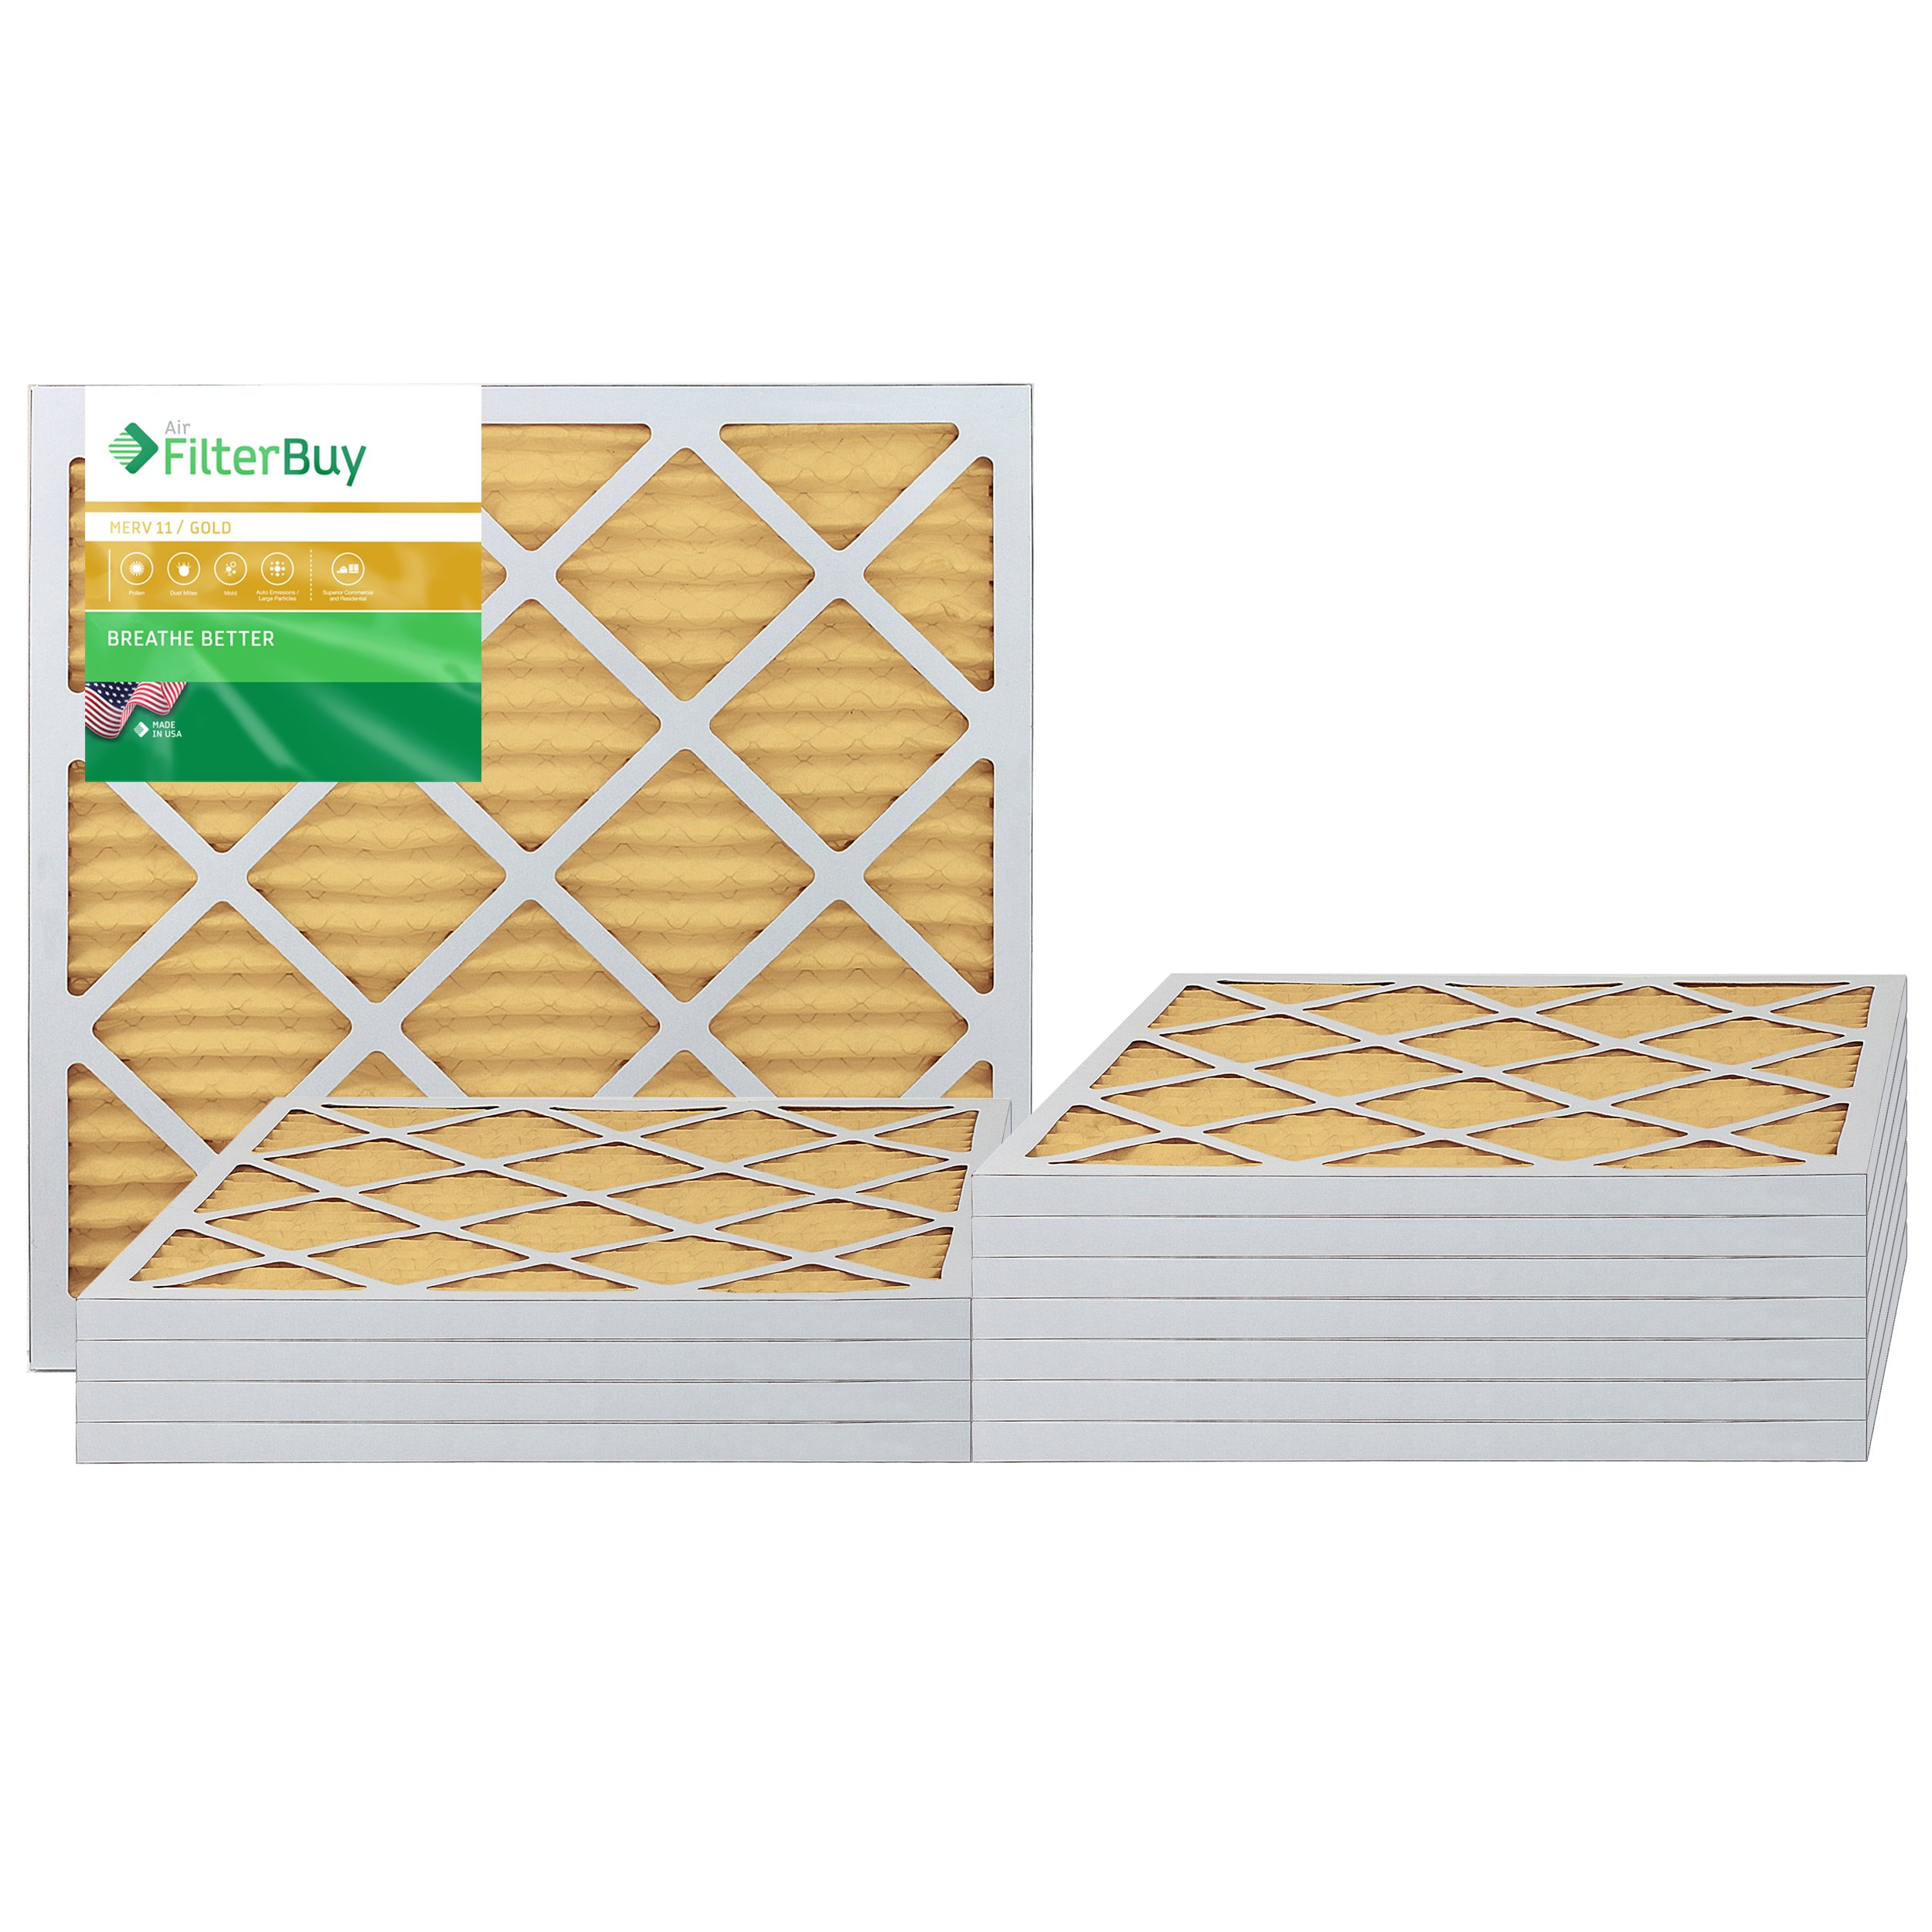 AFB Gold MERV 11 21x23x1 Pleated AC Furnace Air Filter. Pack of 12 Filters. 100% produced in the USA.